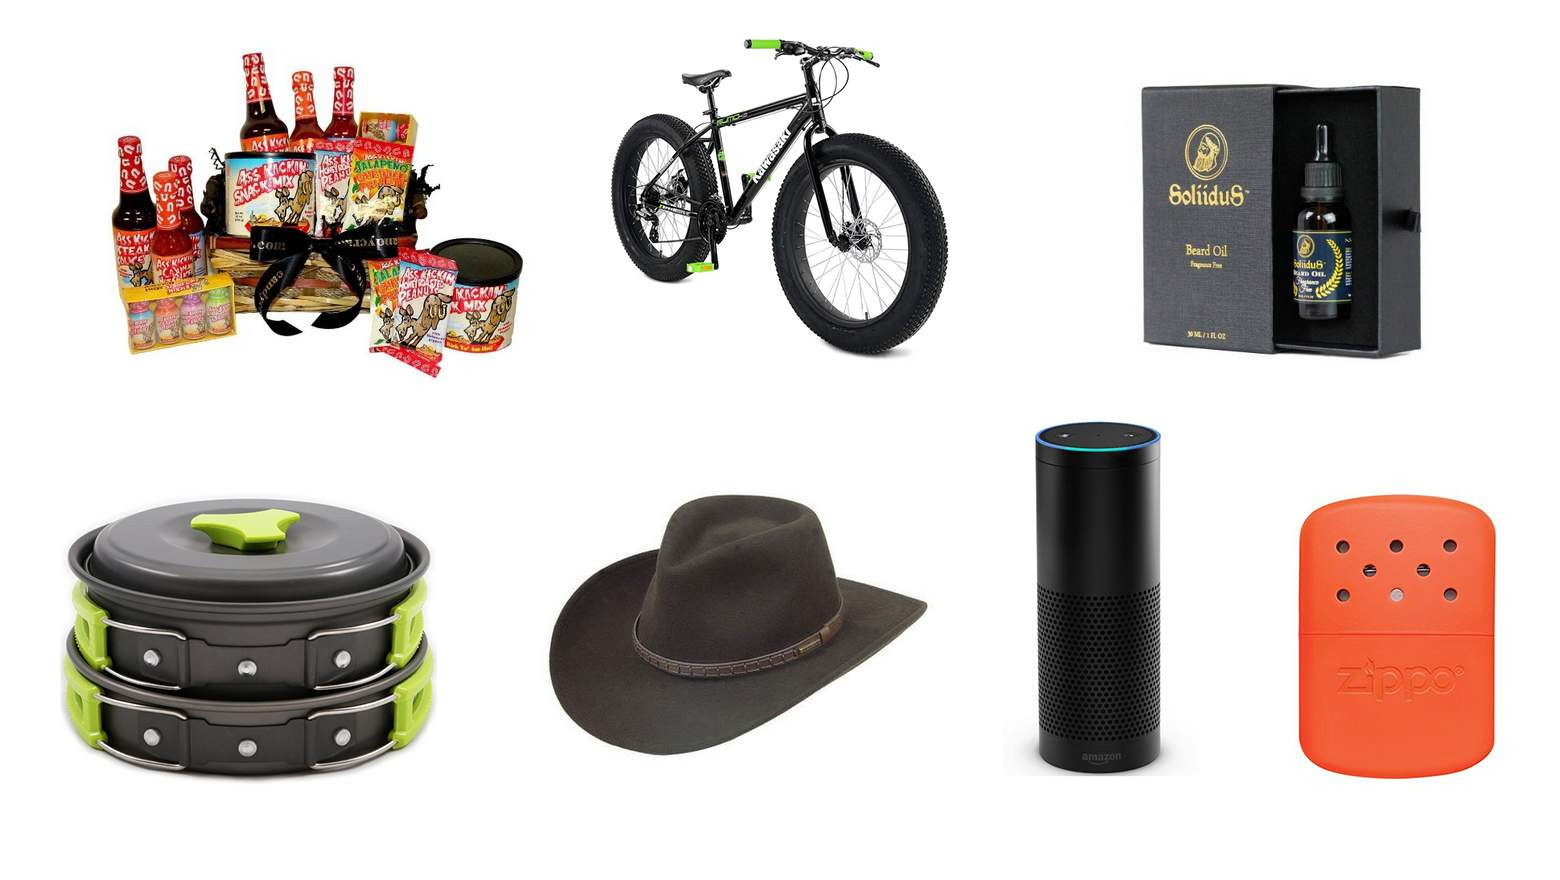 Best ideas about Cool Gift Ideas . Save or Pin Top 10 Best Unusual Gifts for Men Now.